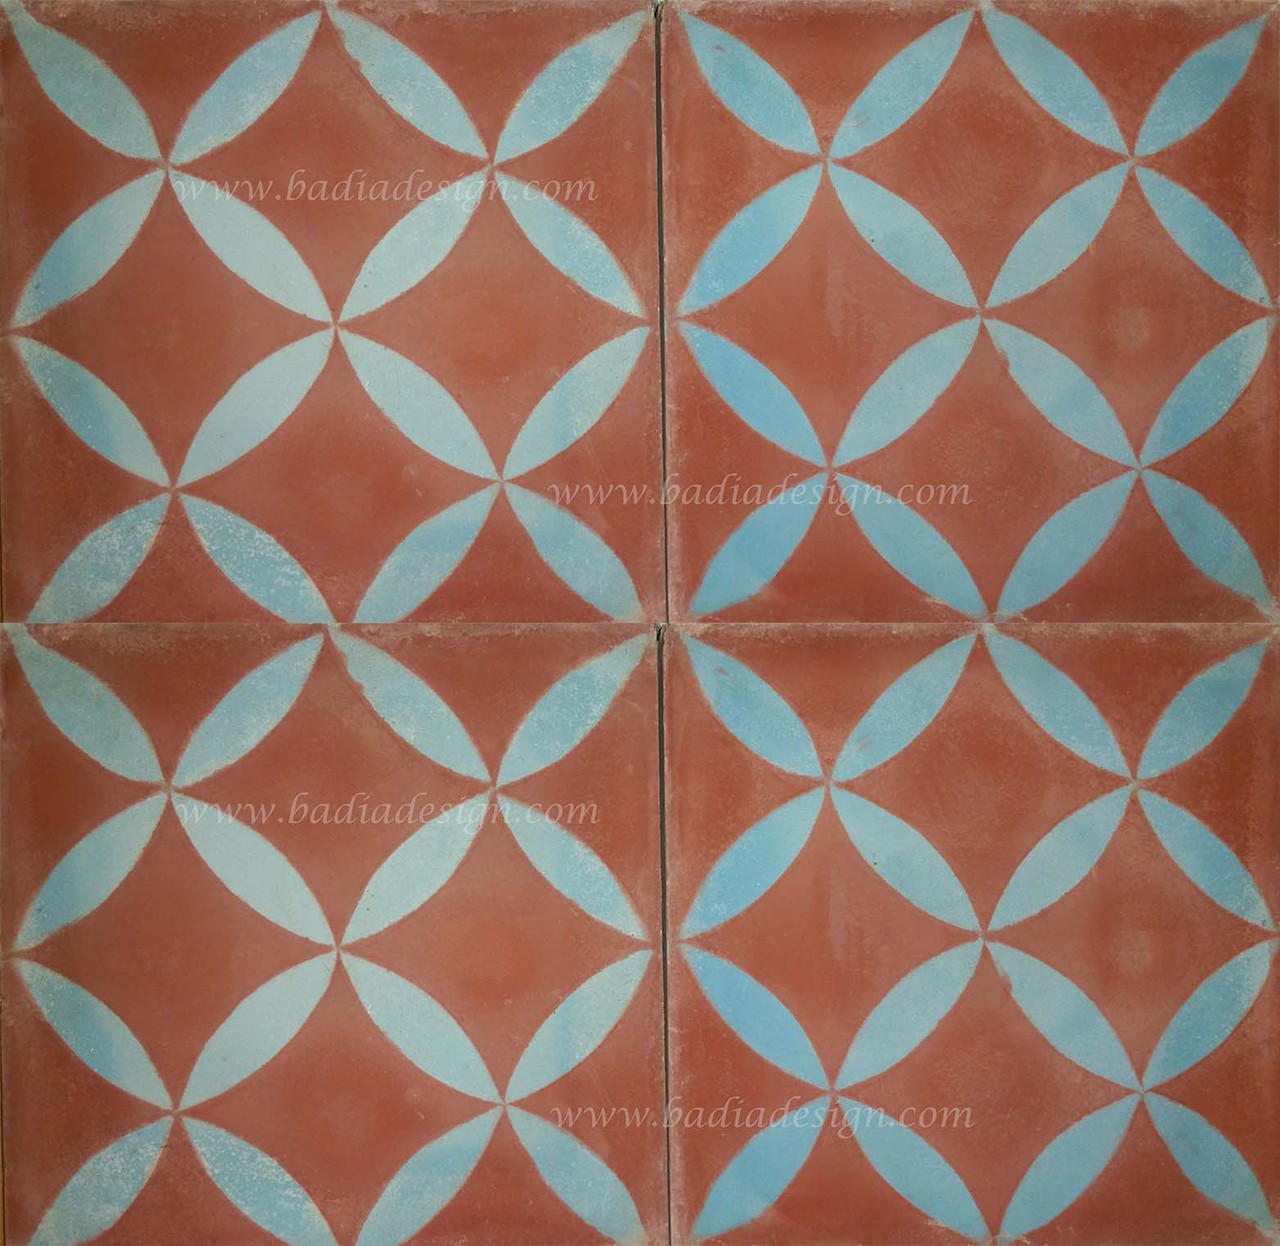 Moroccan Mosaic Cement Floor Tile From Badia Design Inc